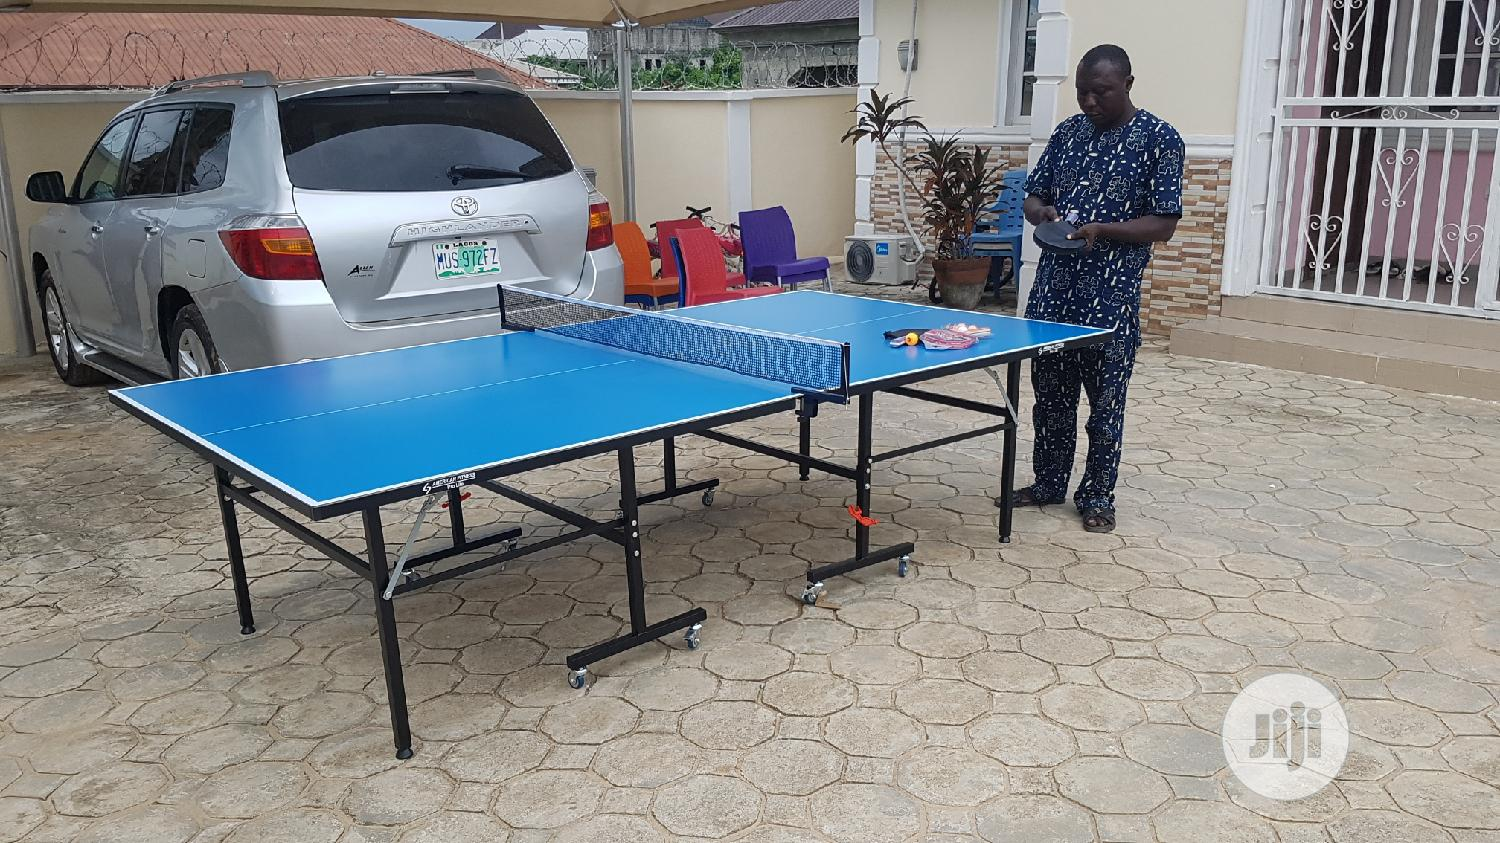 Pro Lite American Fitness Table Tennis Board With Accessories